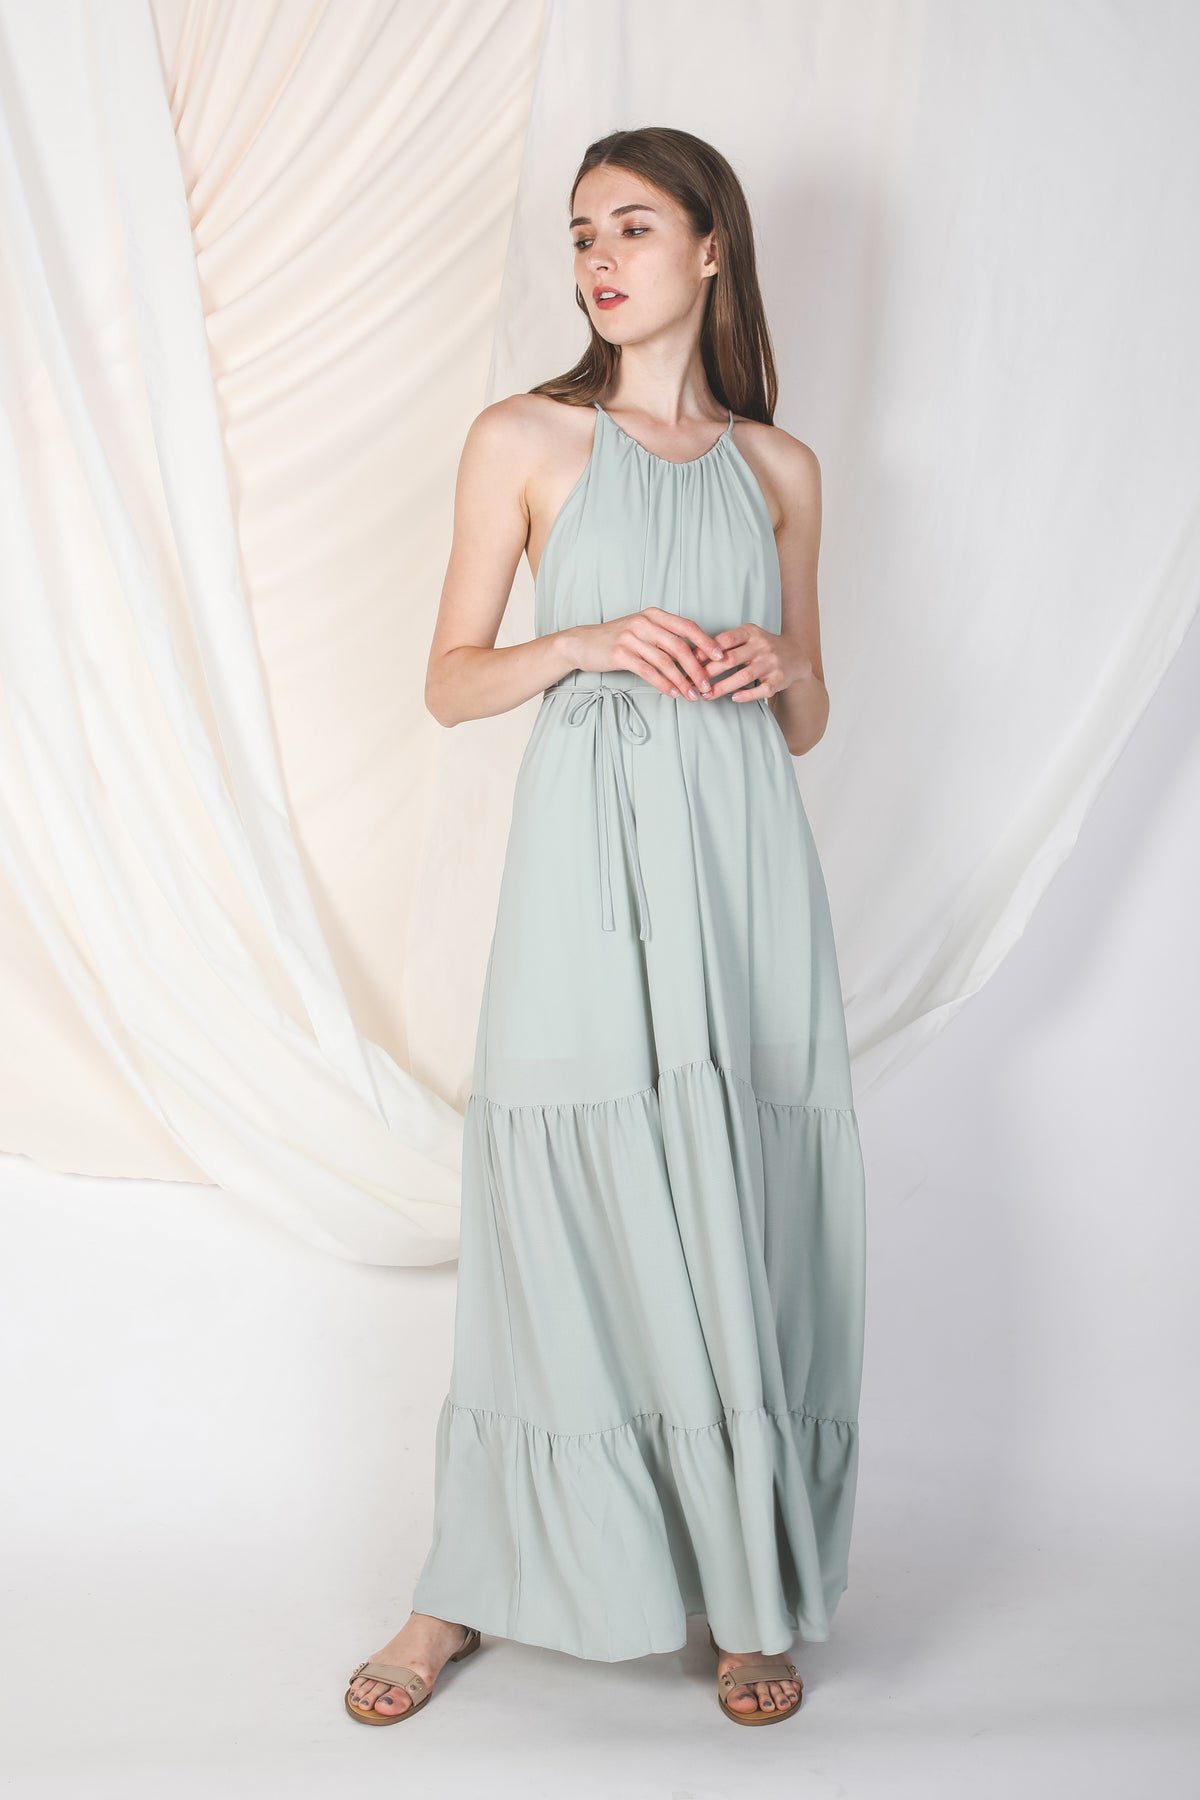 Tiered A-Line Dress In Jade